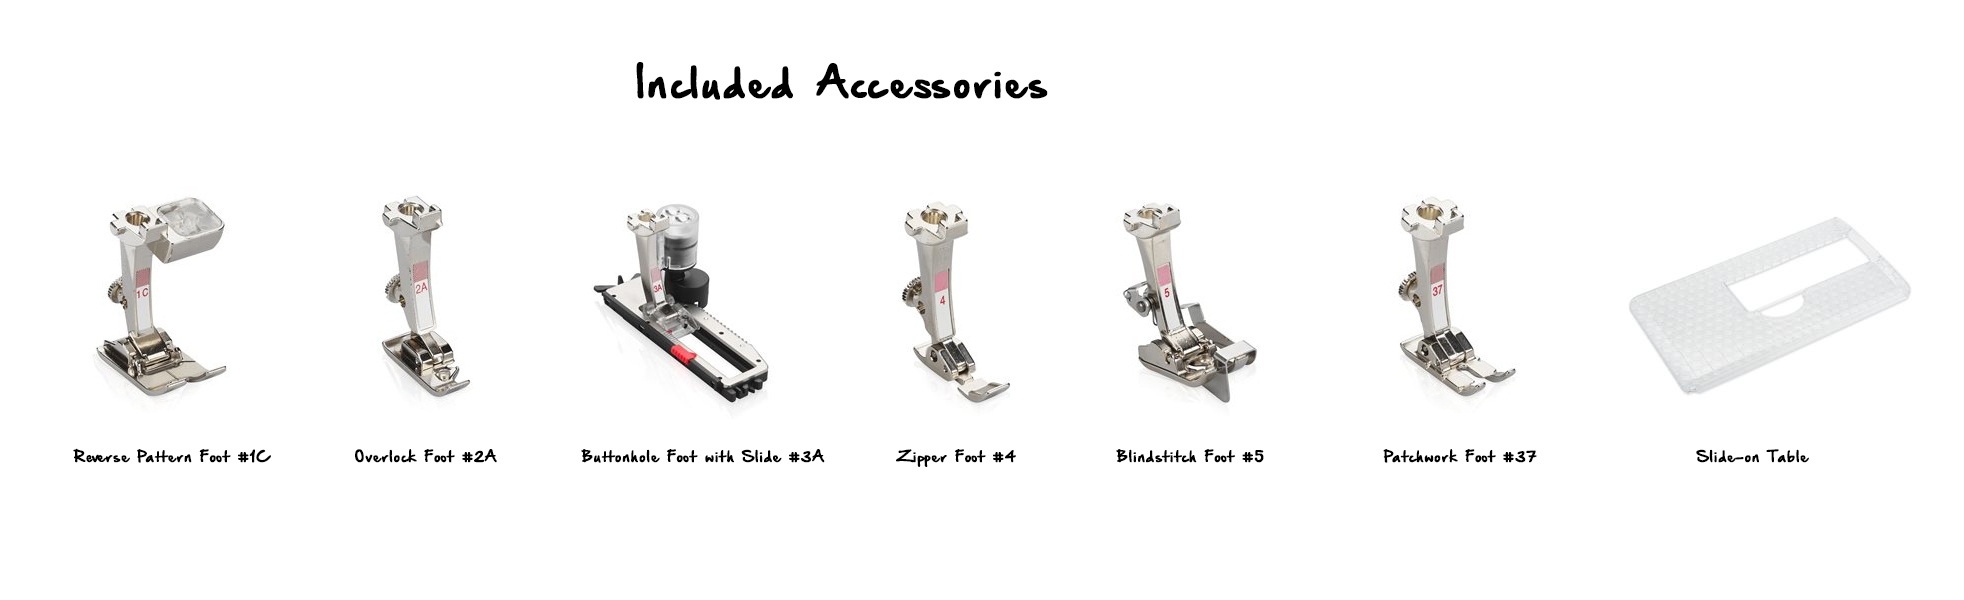 475-included-accessories.jpg